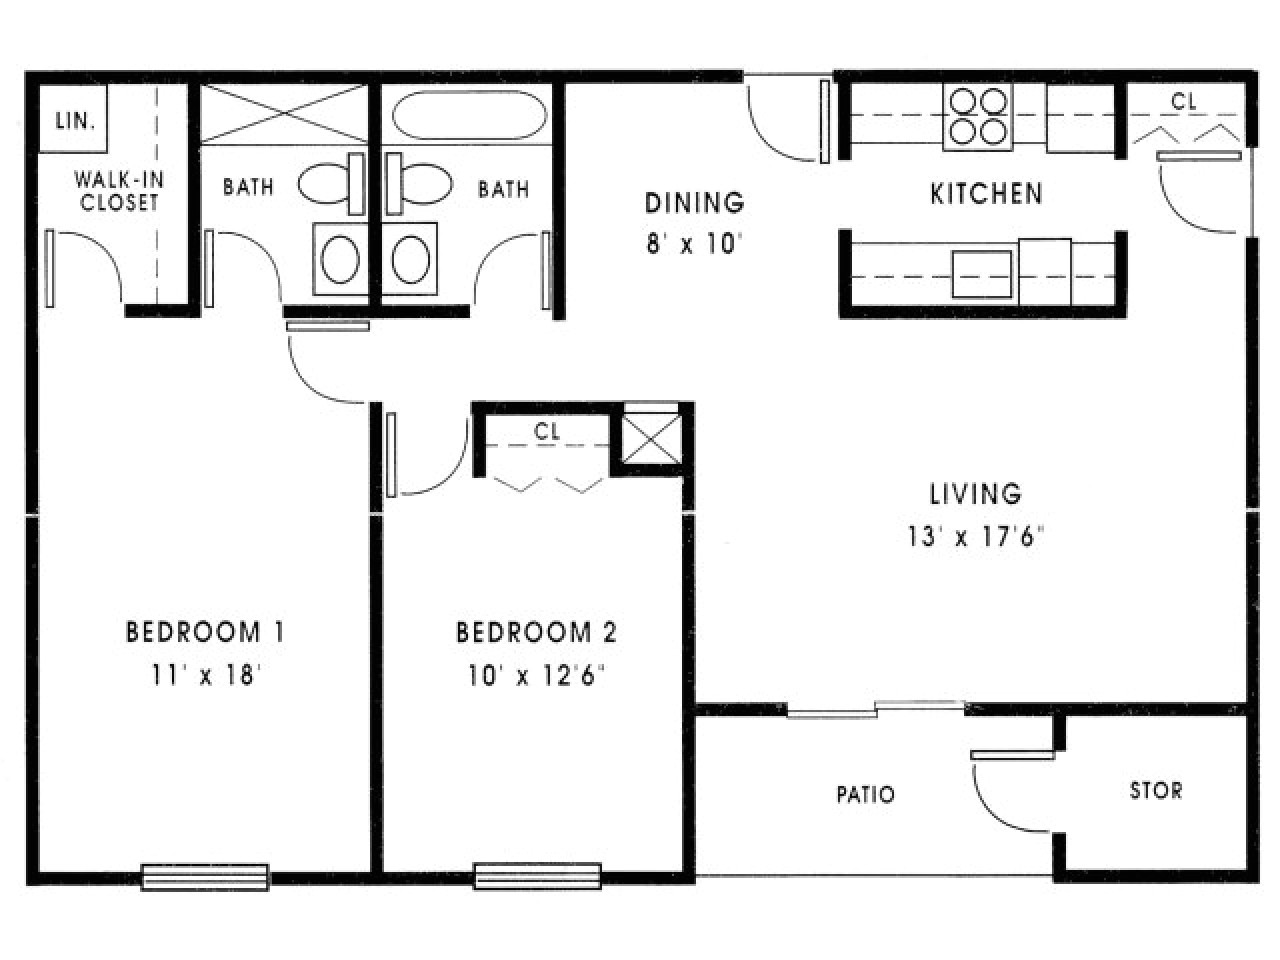 One Bedroom House Plans 1000 Square Feet One Bedroom House Plans 1000 Square Feet House Style and